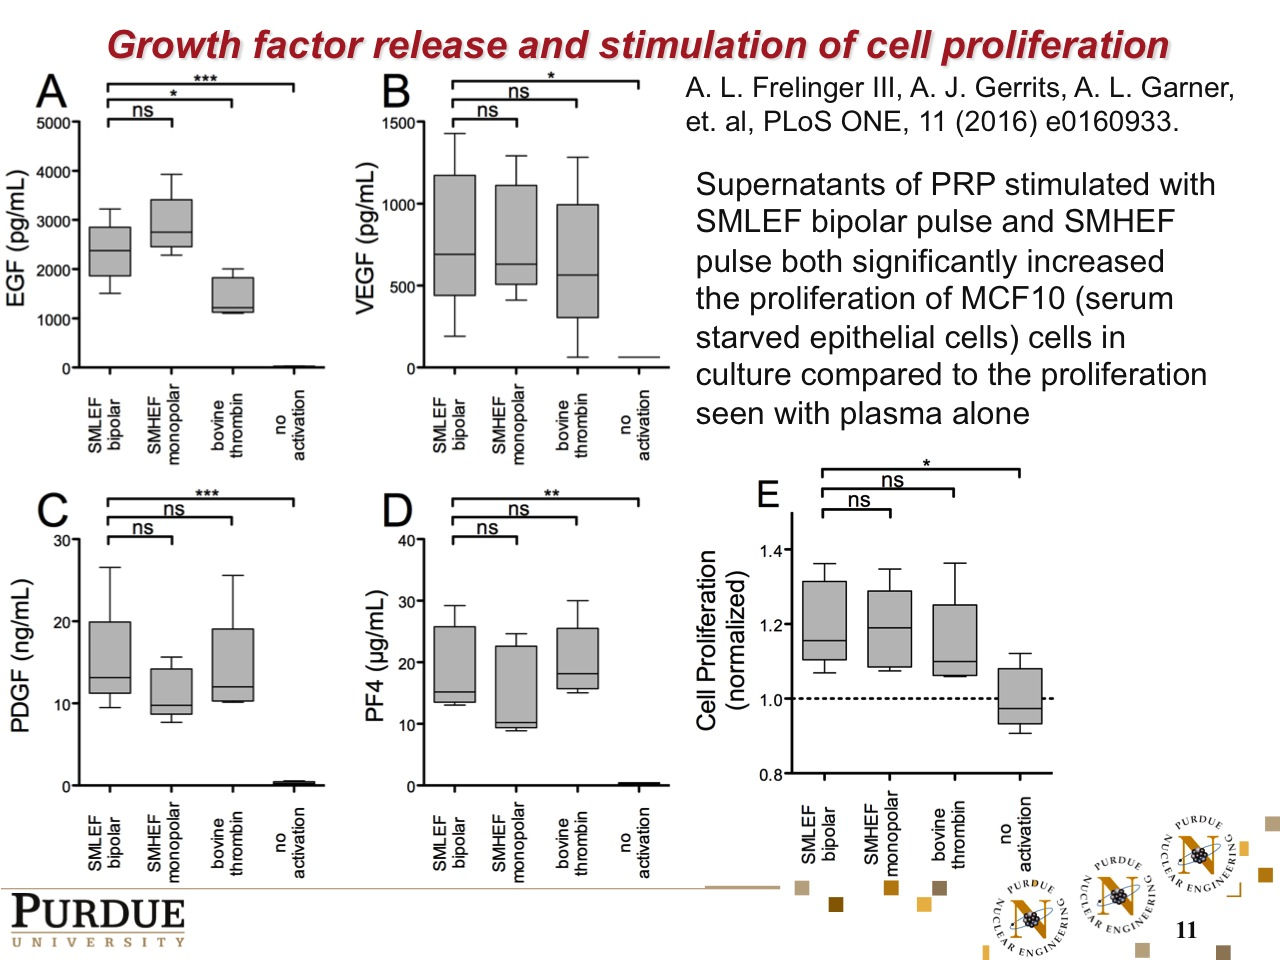 Growth factor release and stimulation of cell proliferation